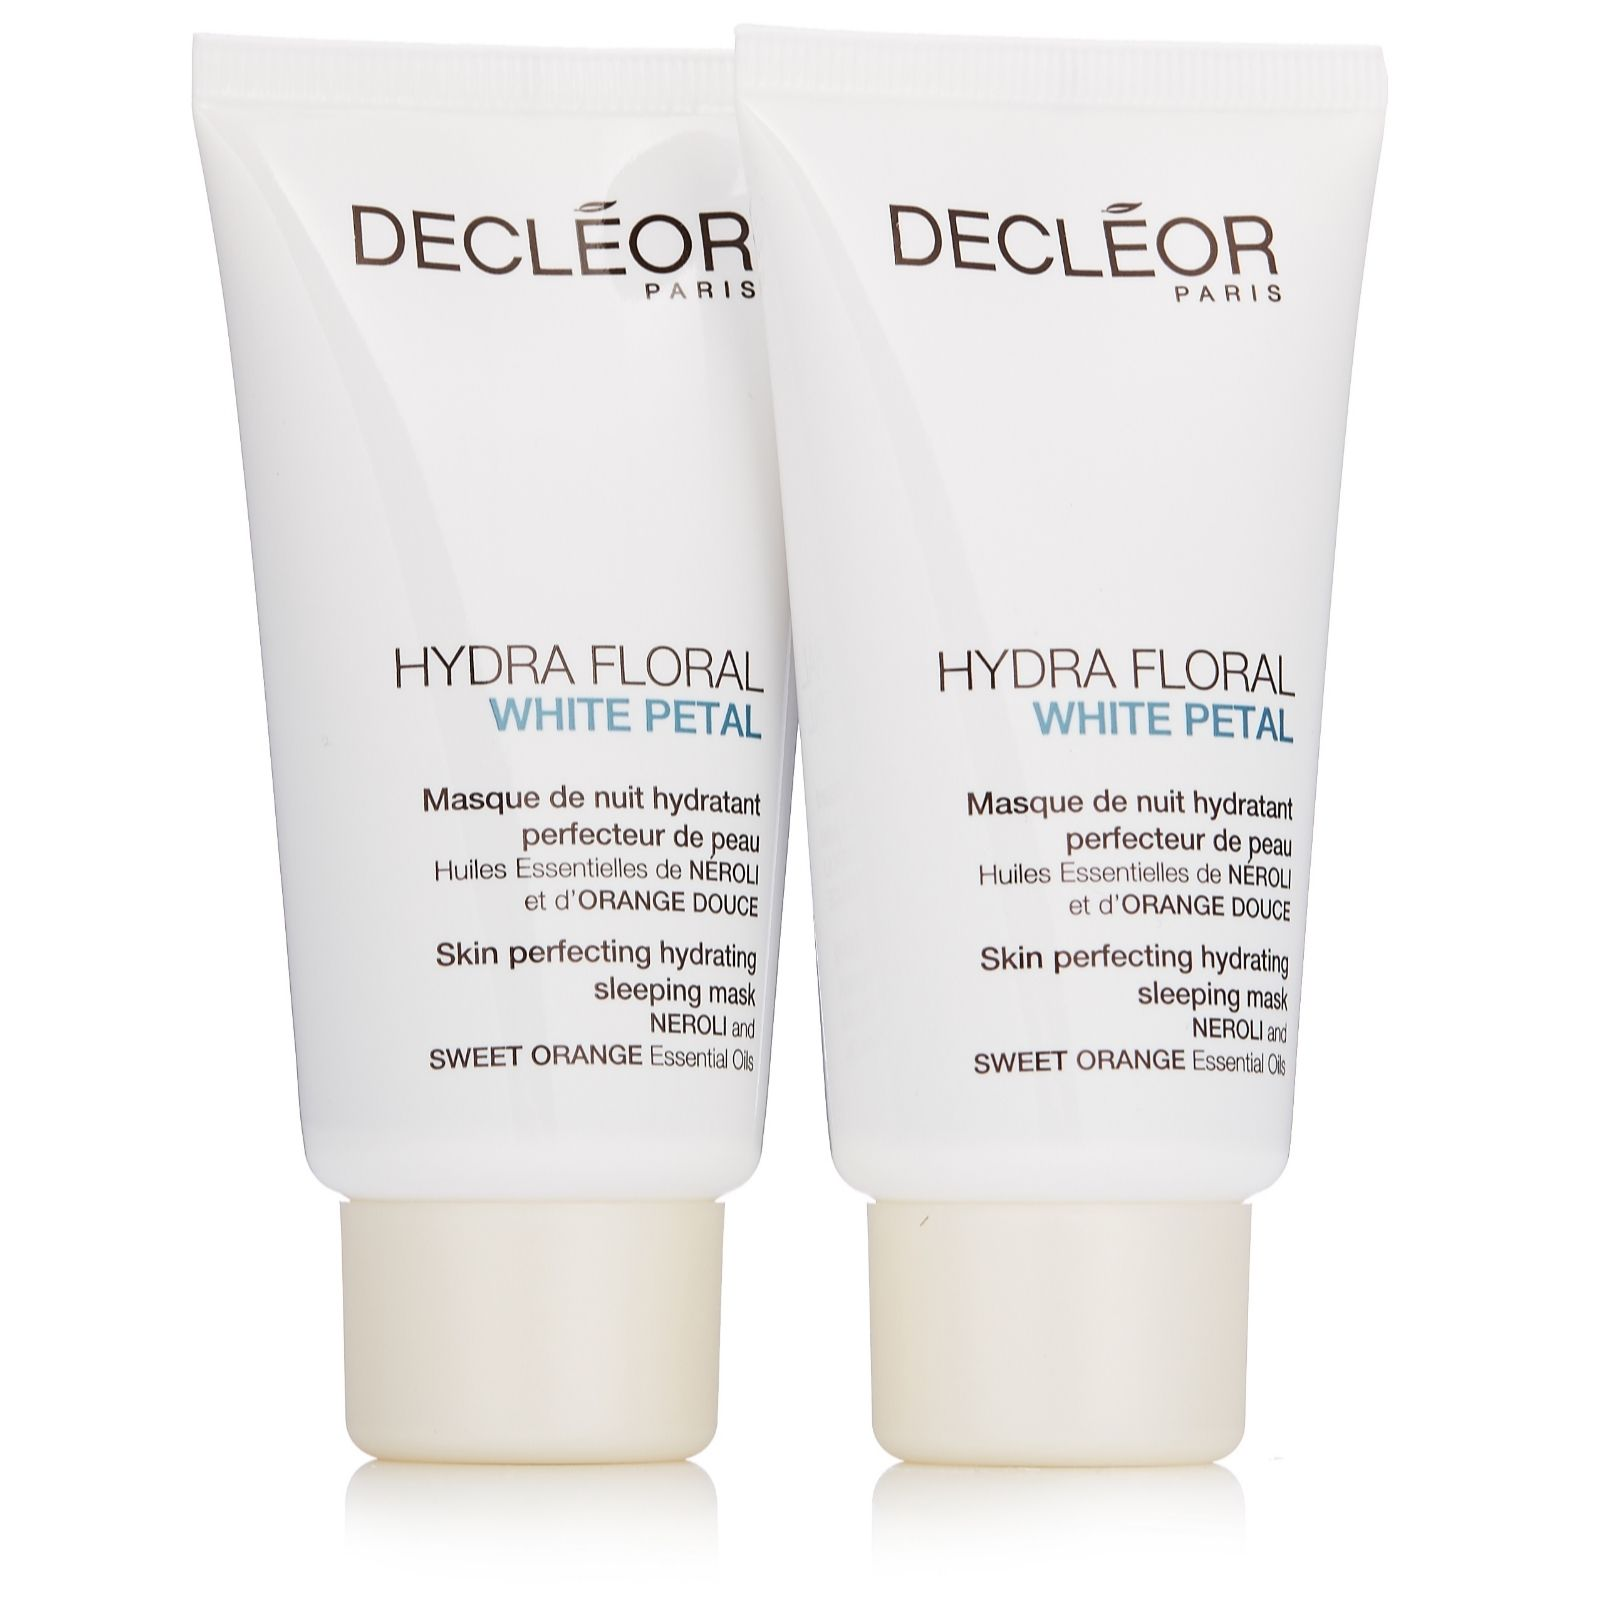 27a8f9abe Decleor Hydra Floral White Petal Sleep Mask Duo - QVC UK